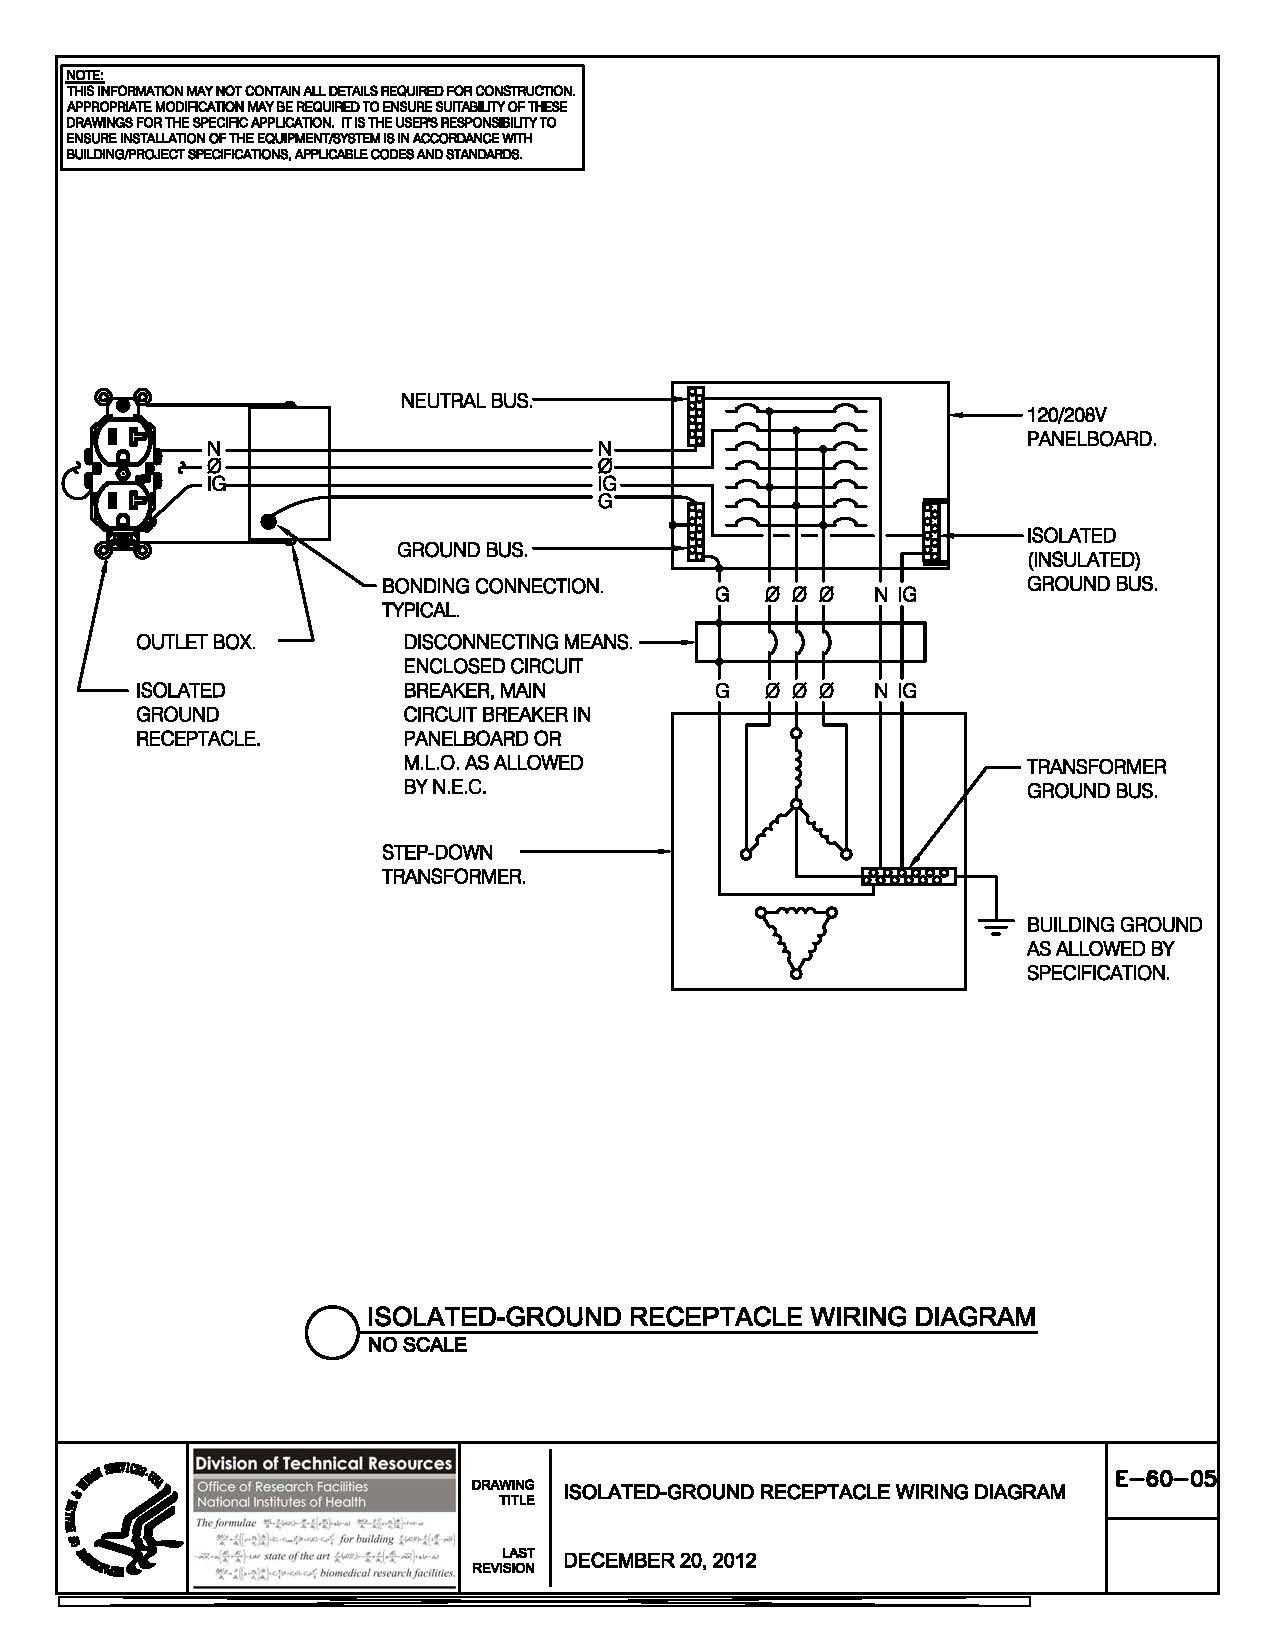 Electrical Panel Board Wiring Diagram Pdf Perfect Wiring Diagram